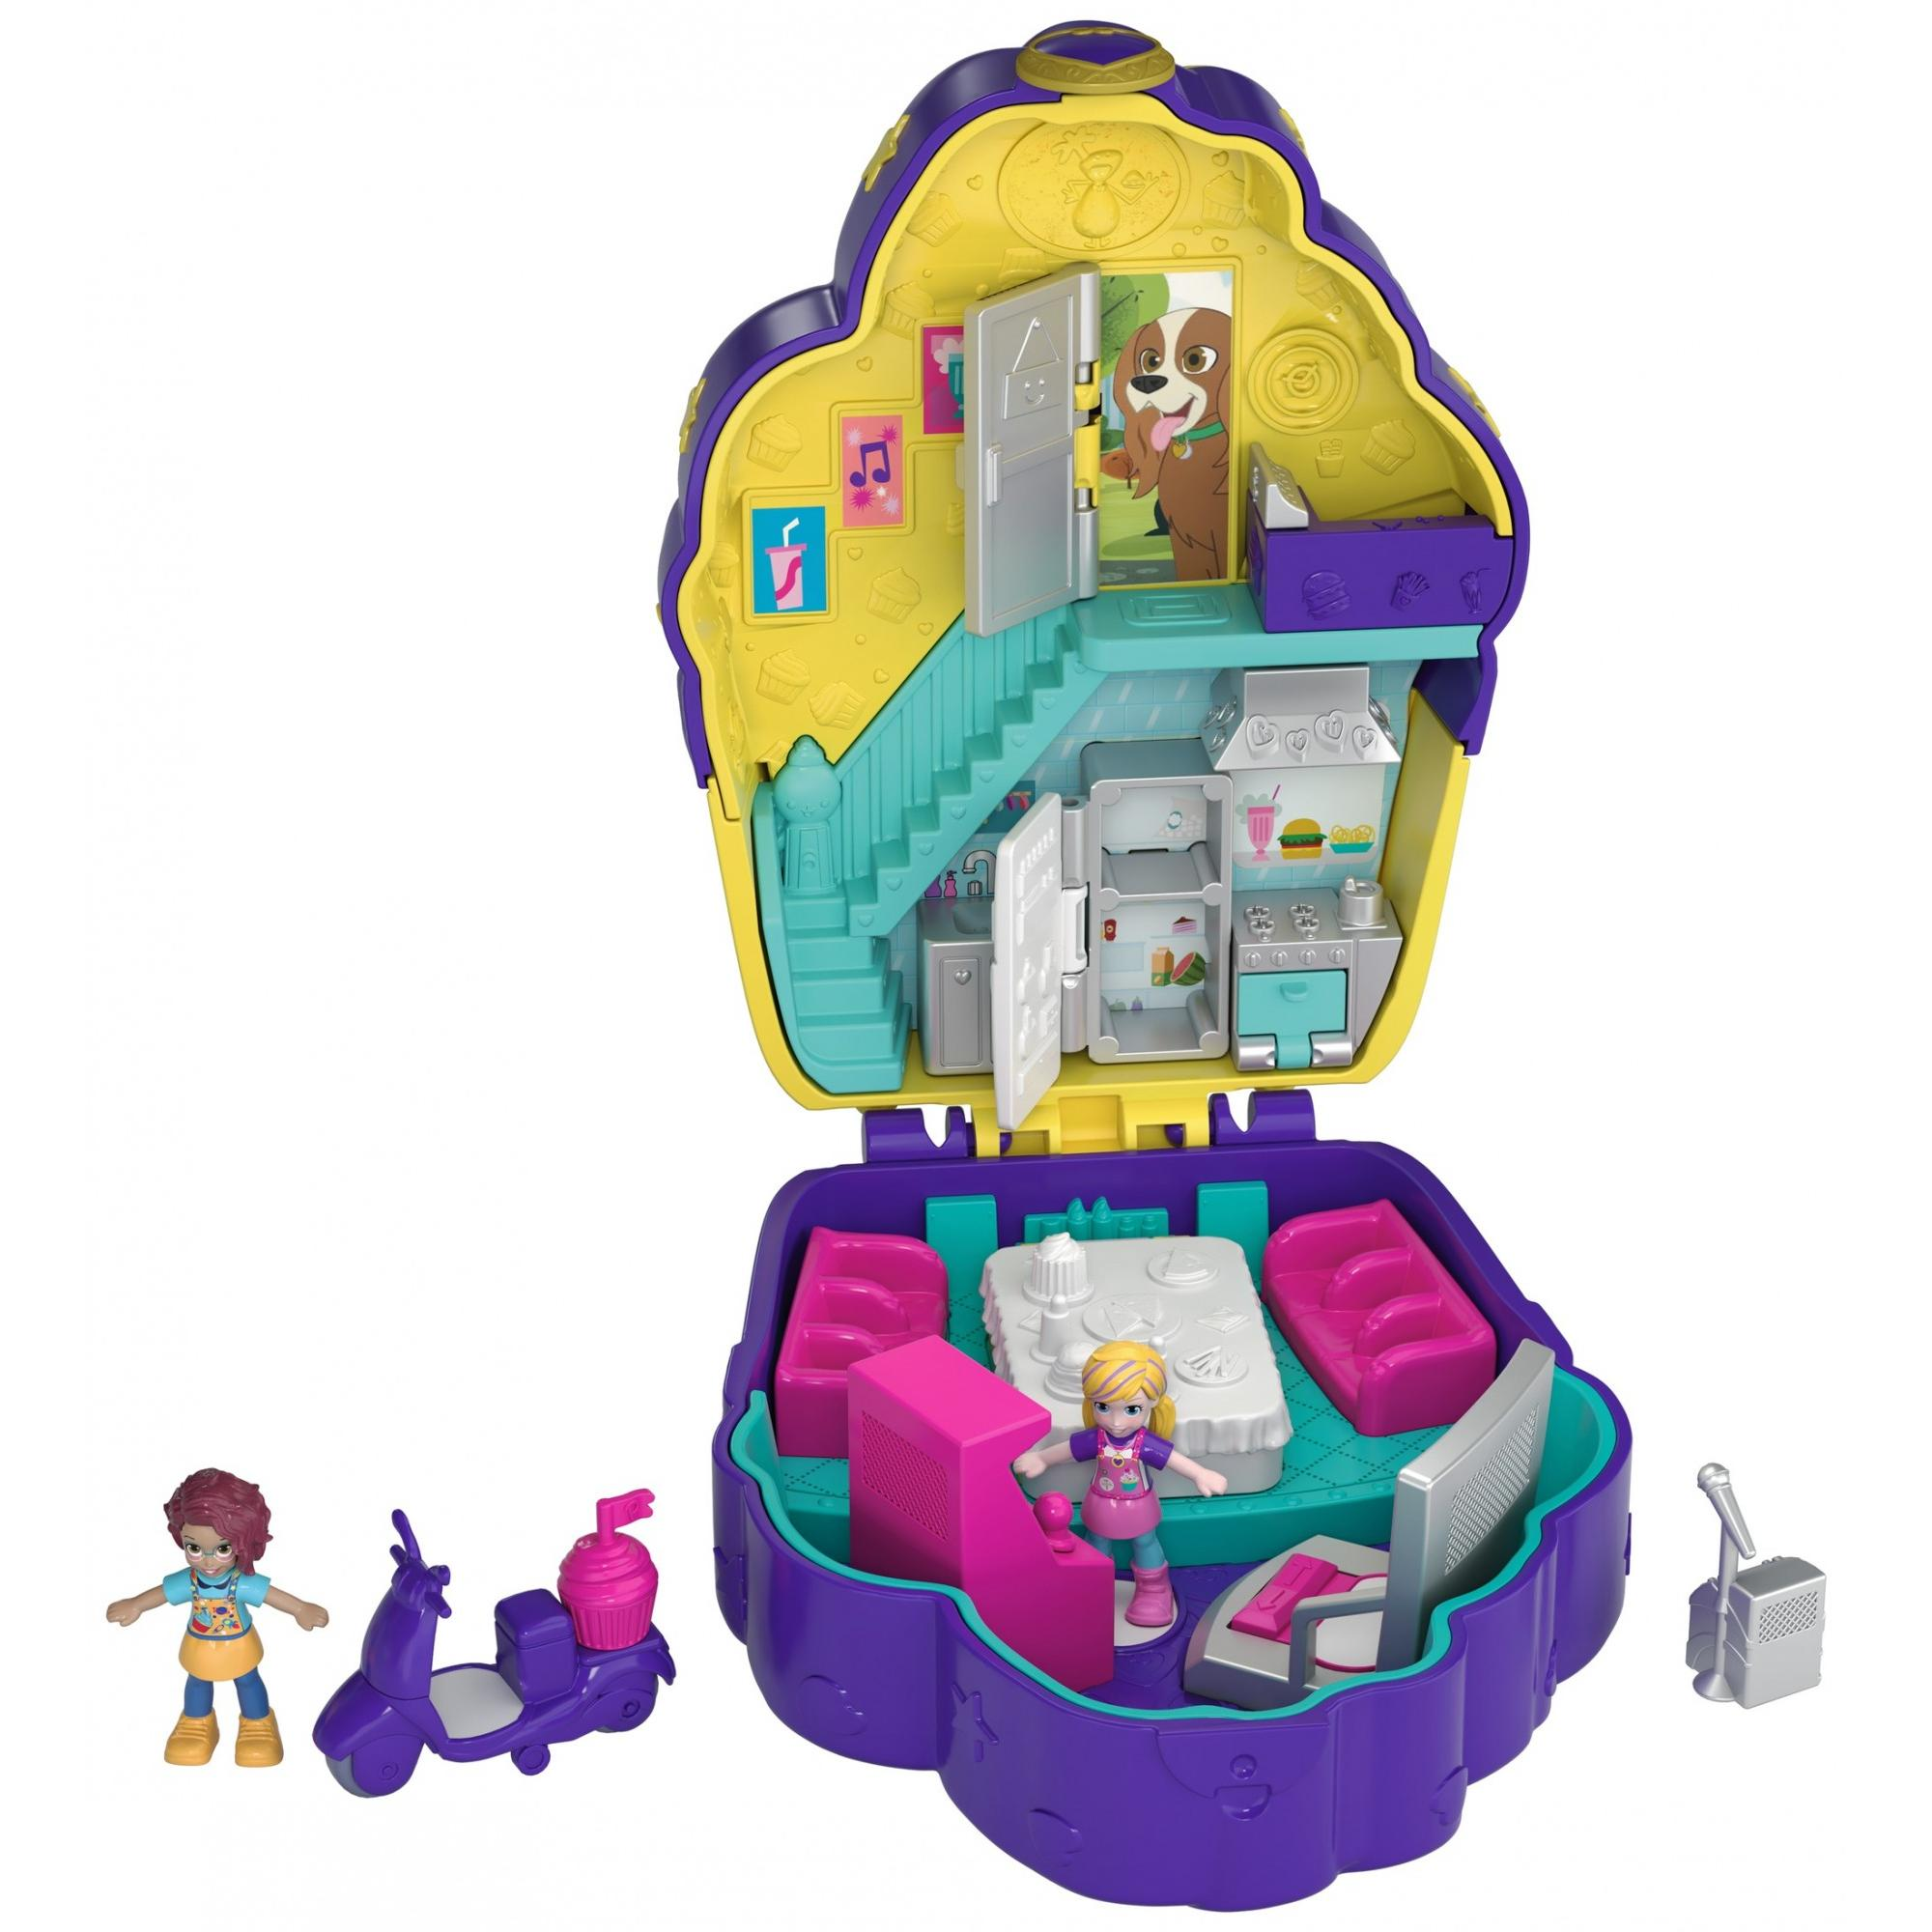 Polly Pocket Pocket Sweet Treat Cupcake Café-Themed Compact with Dolls